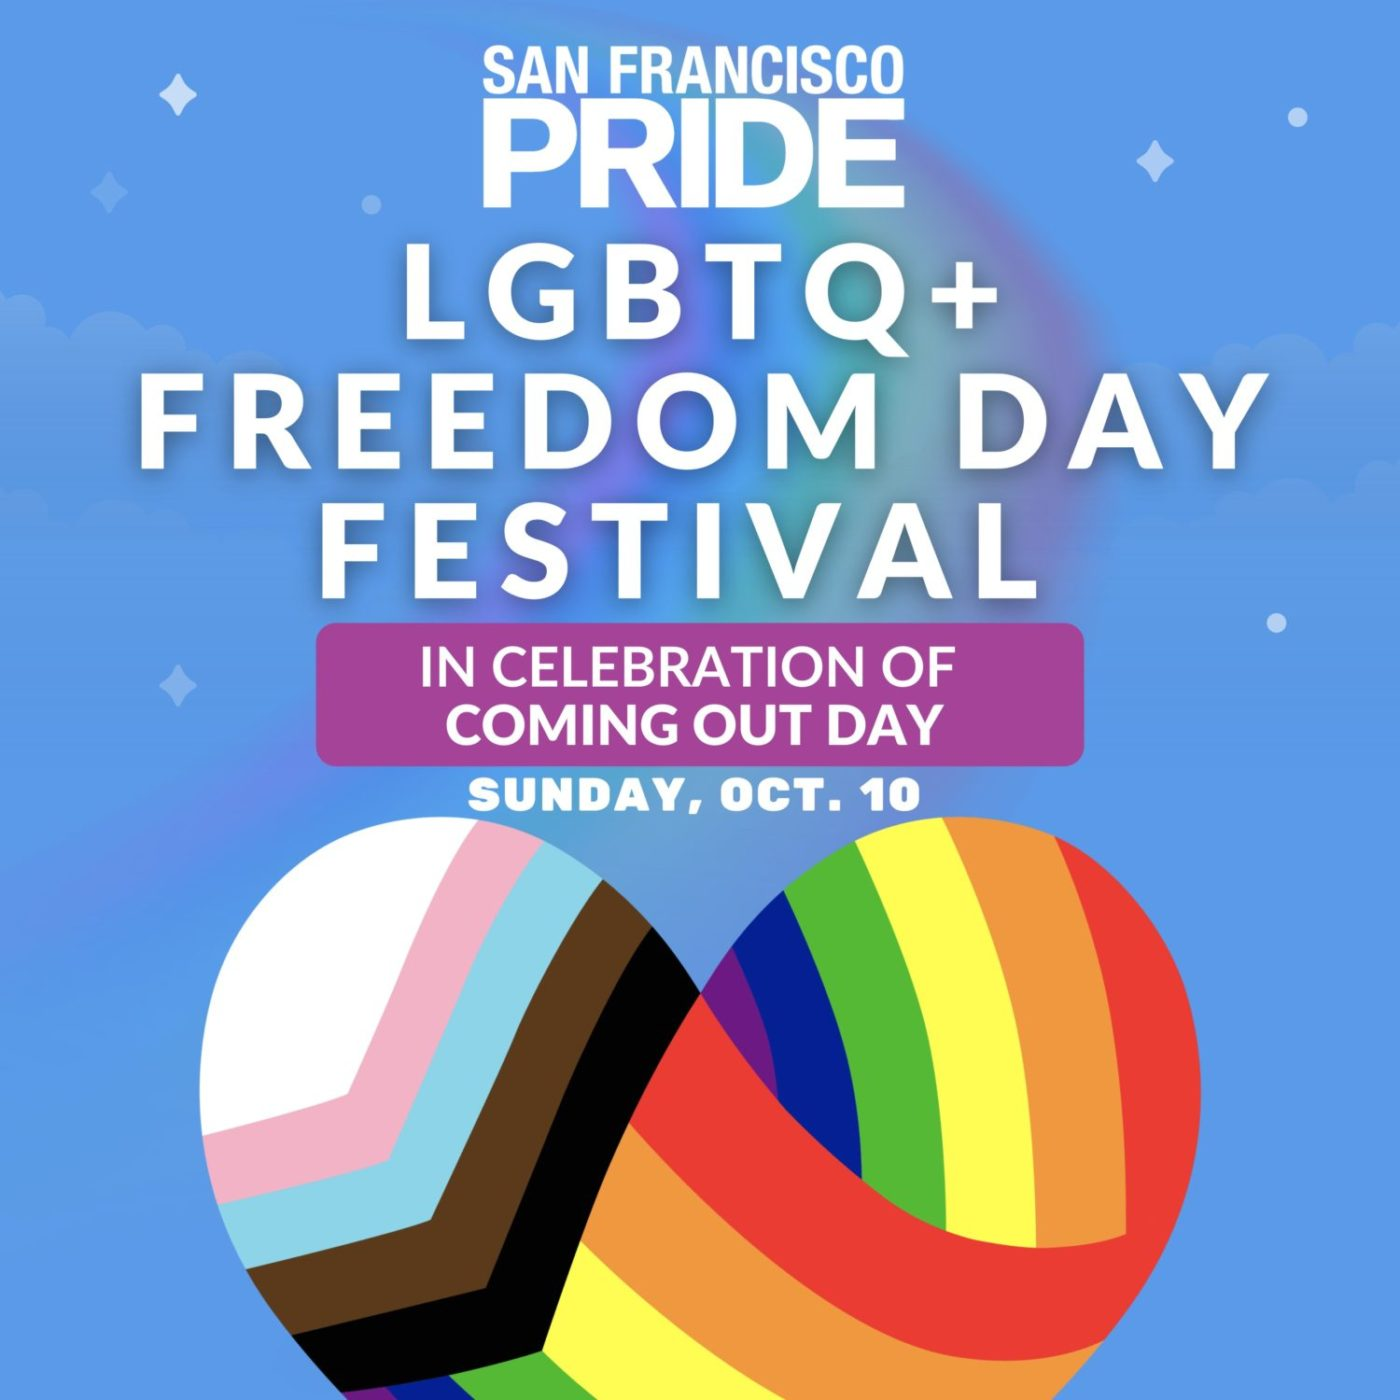 LGBTQ-Freedom-Day-Festival-1400x1400, Oakland Pride is back in person, Folsom Street Fair presents Megahood and more, Culture Currents